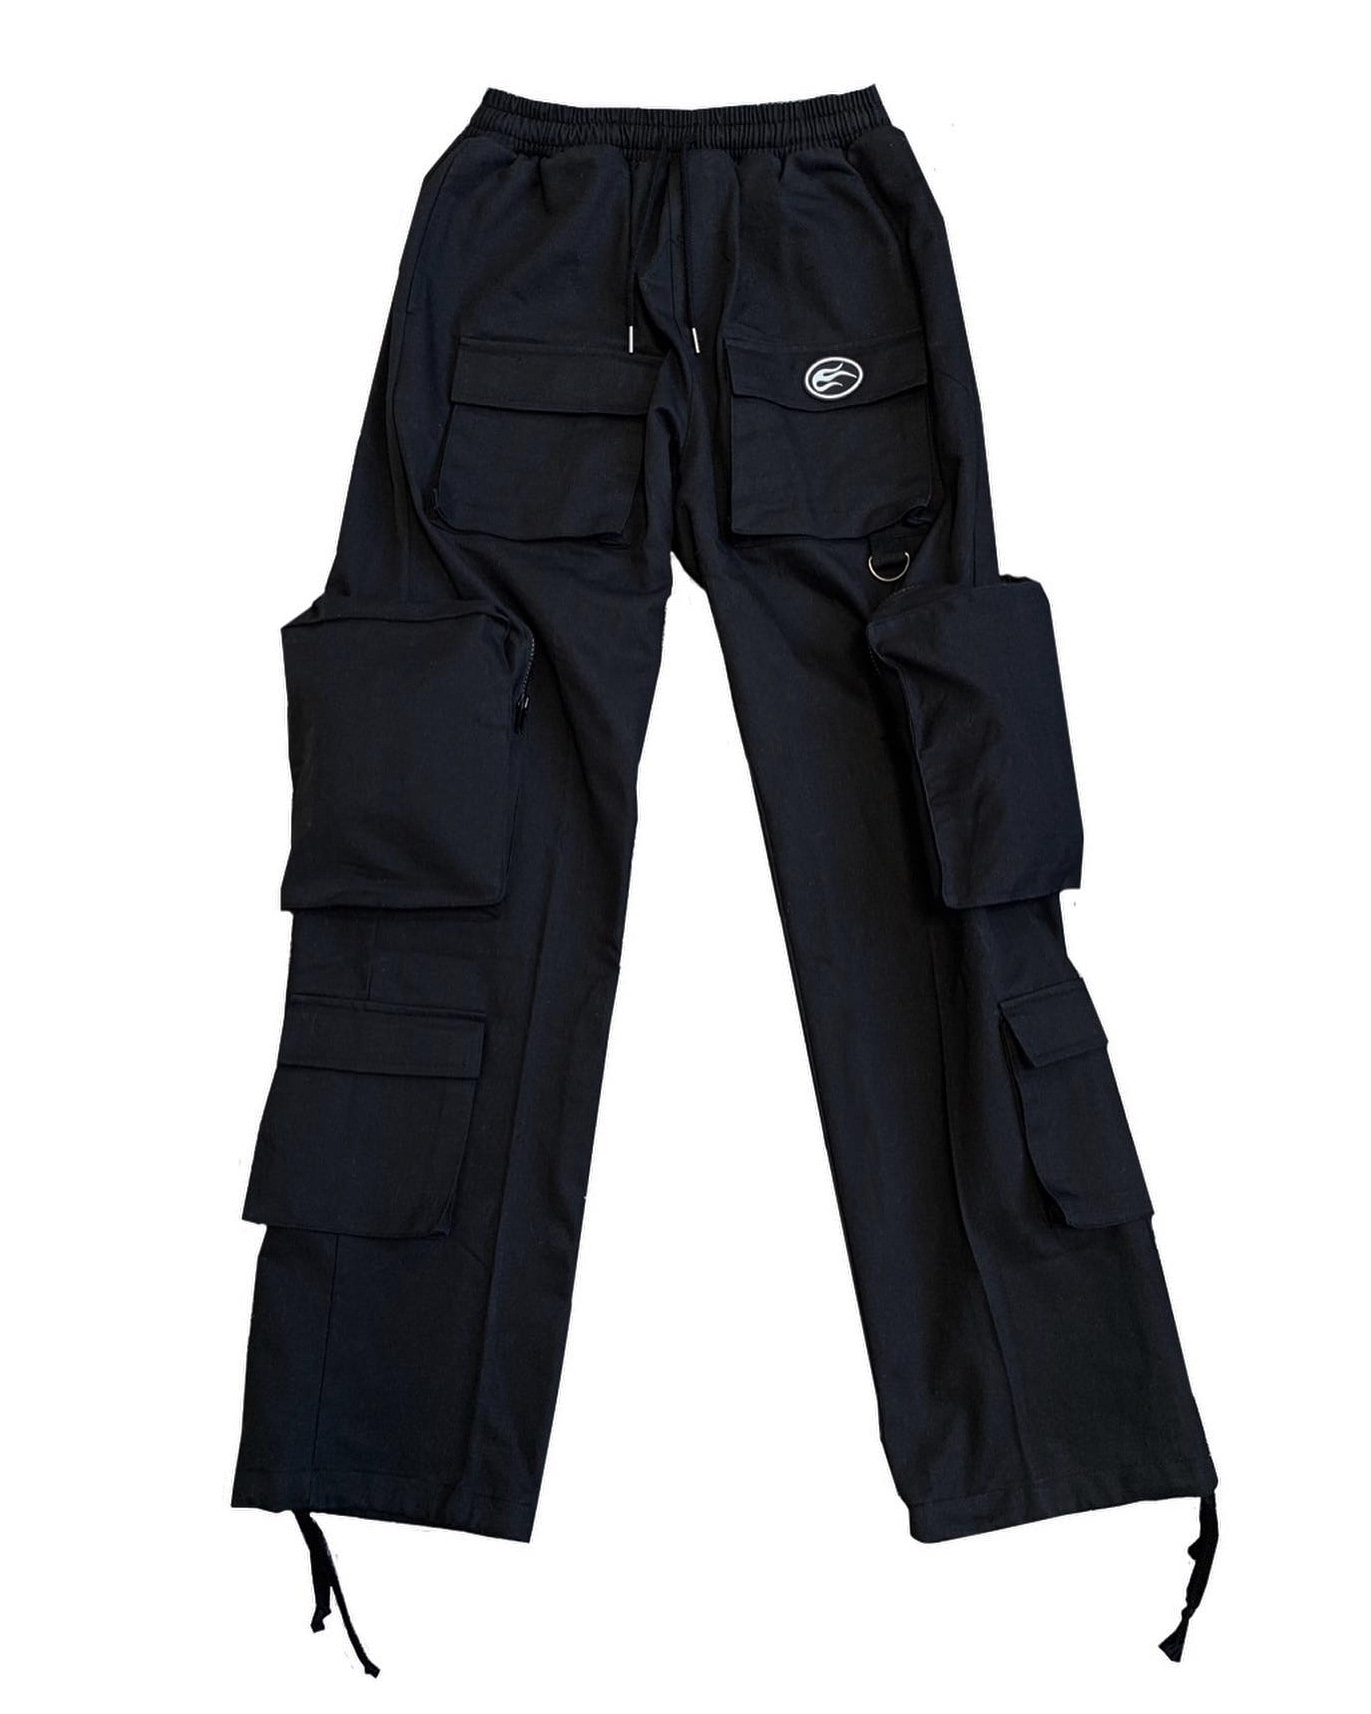 3d SIGNATURE Pocket Pants